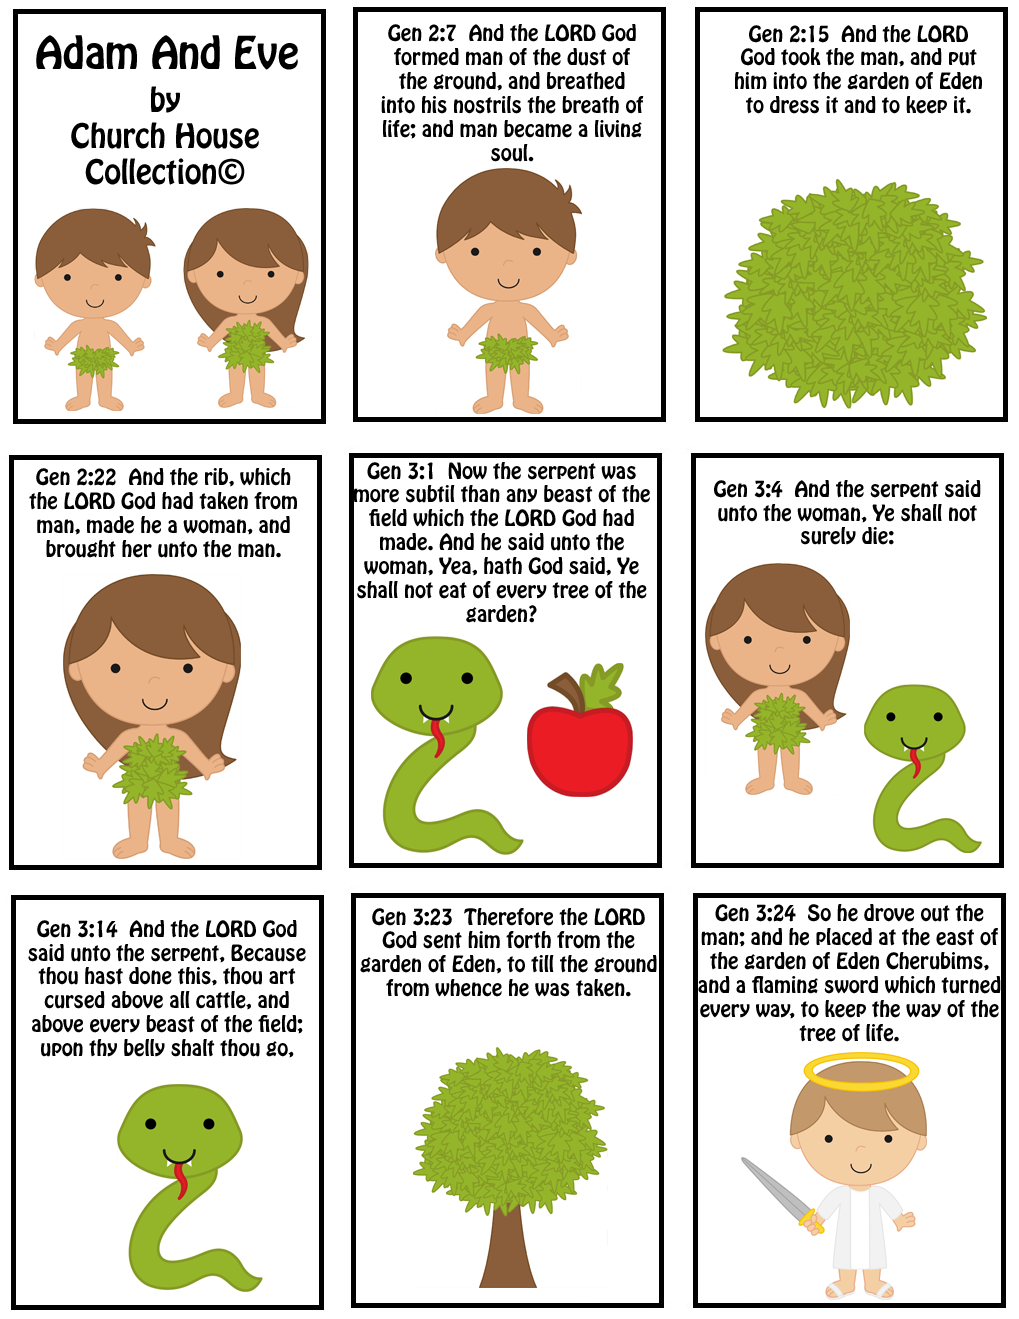 Free Adam And Eve Mini Booklet Printable For Kids In Sunday School or Children's Church